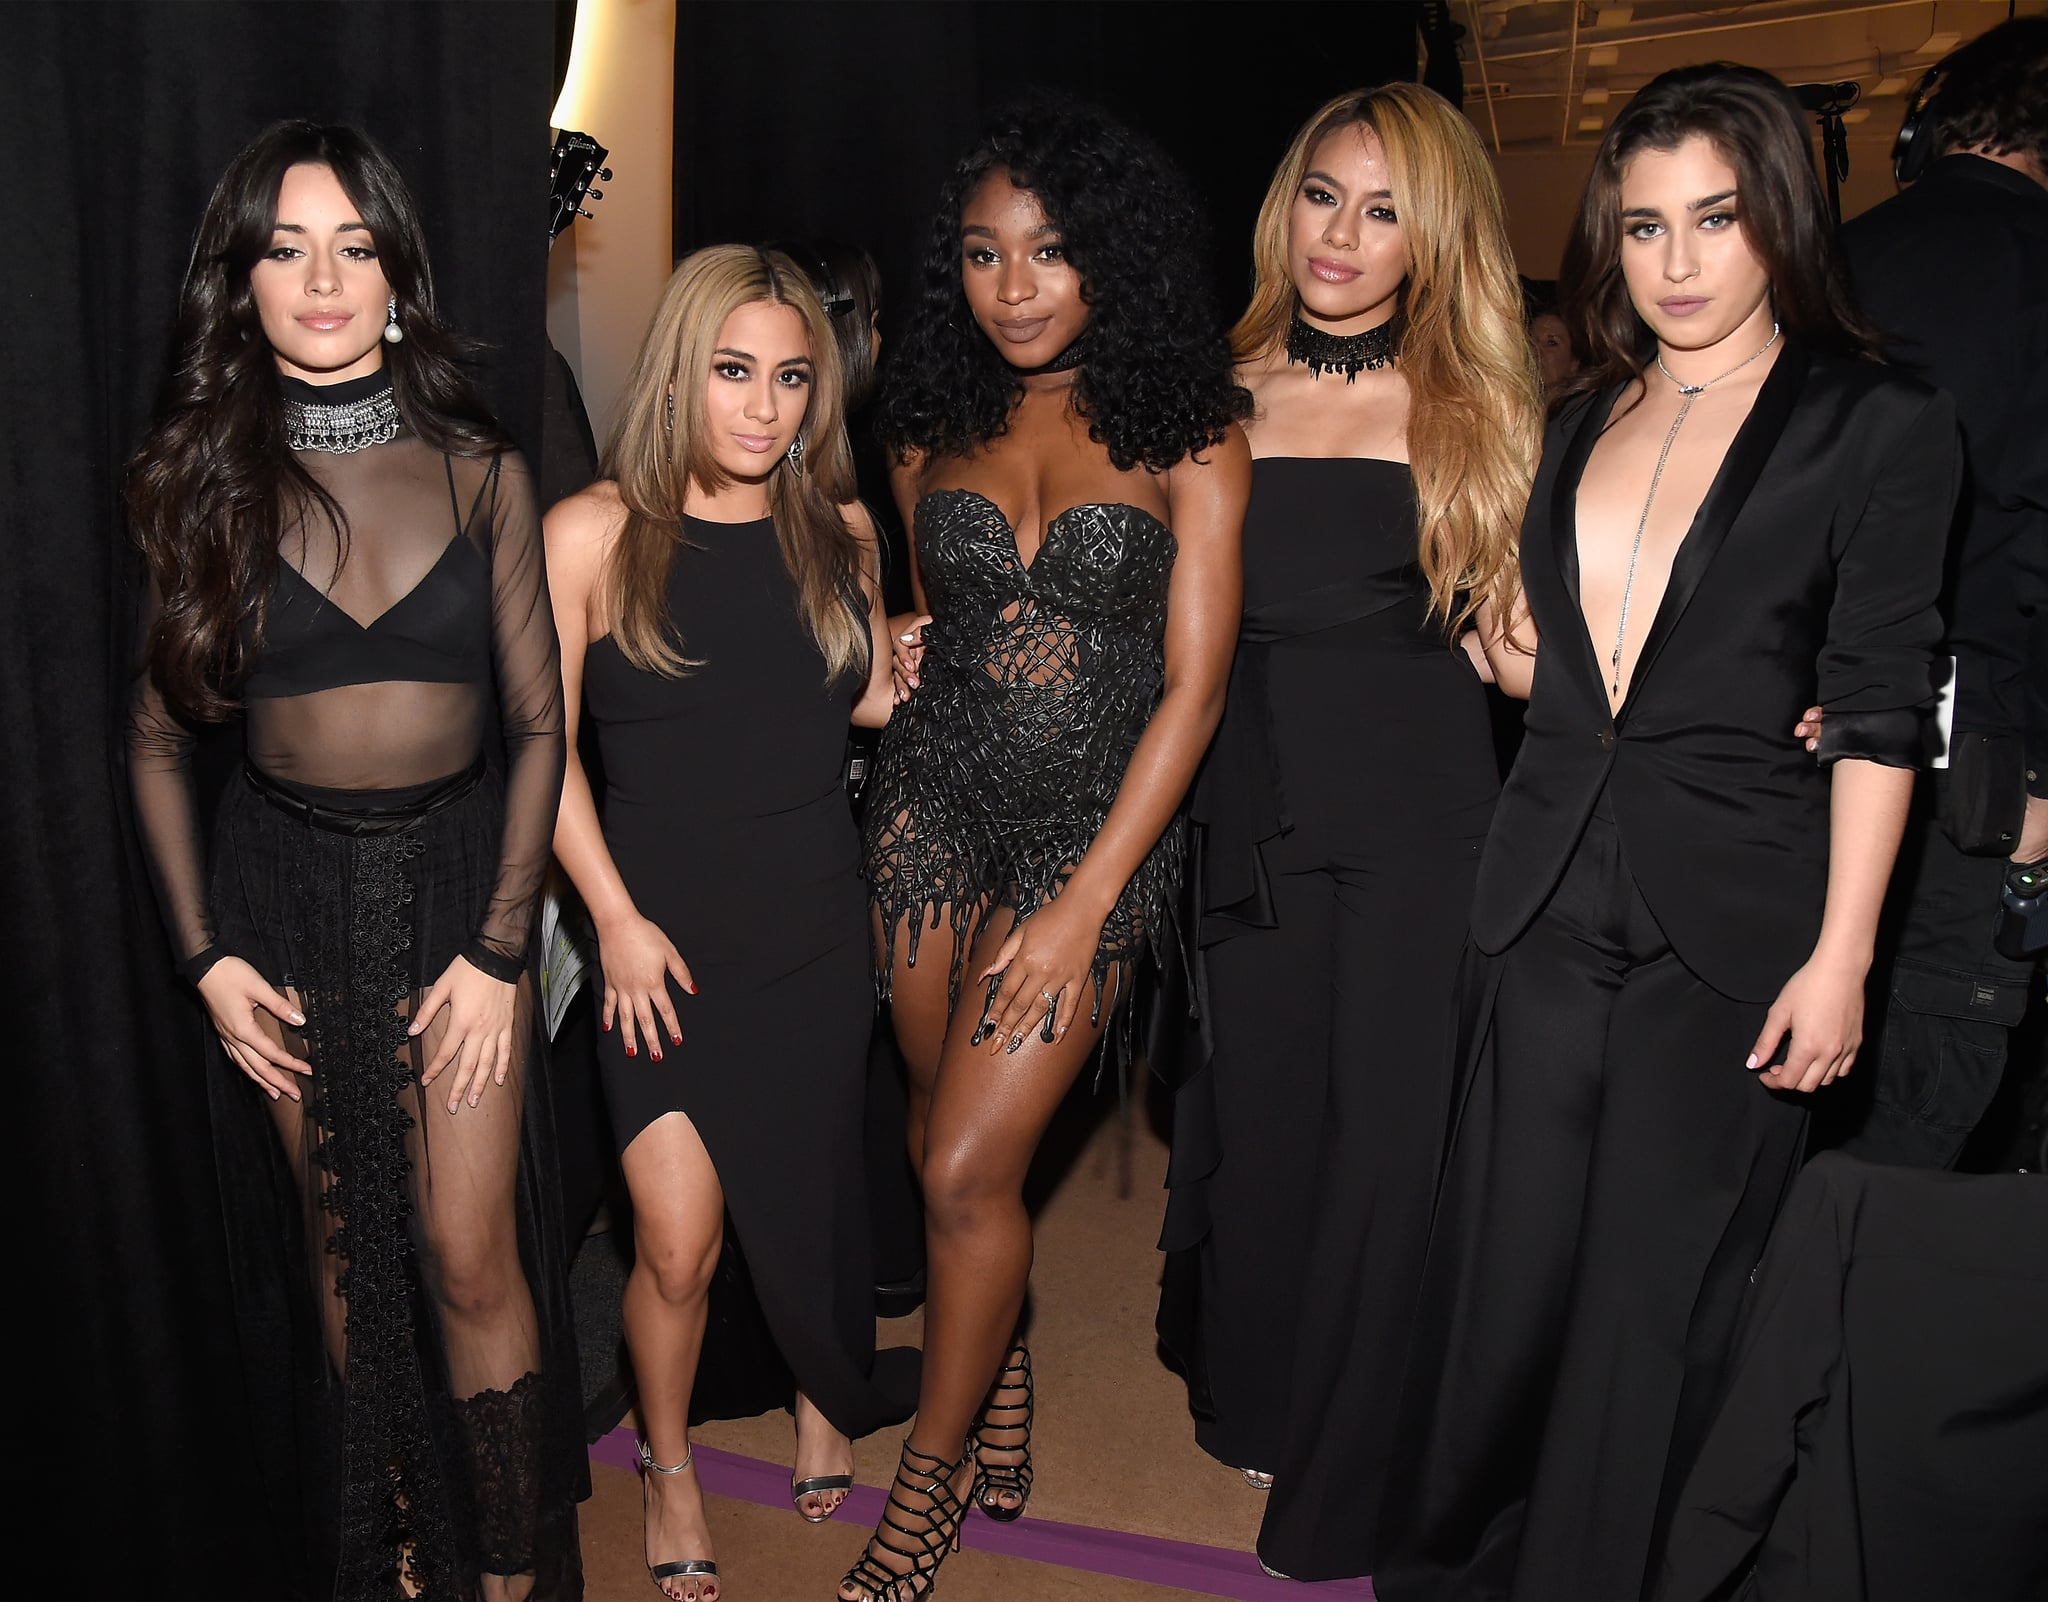 International women s day lauren jauregui fifth harmony camila cabello - Fifth Harmony Made Headlines Late Sunday Night When It Was Announced That One Of Their Members Camila Cabello Was Leaving The Group